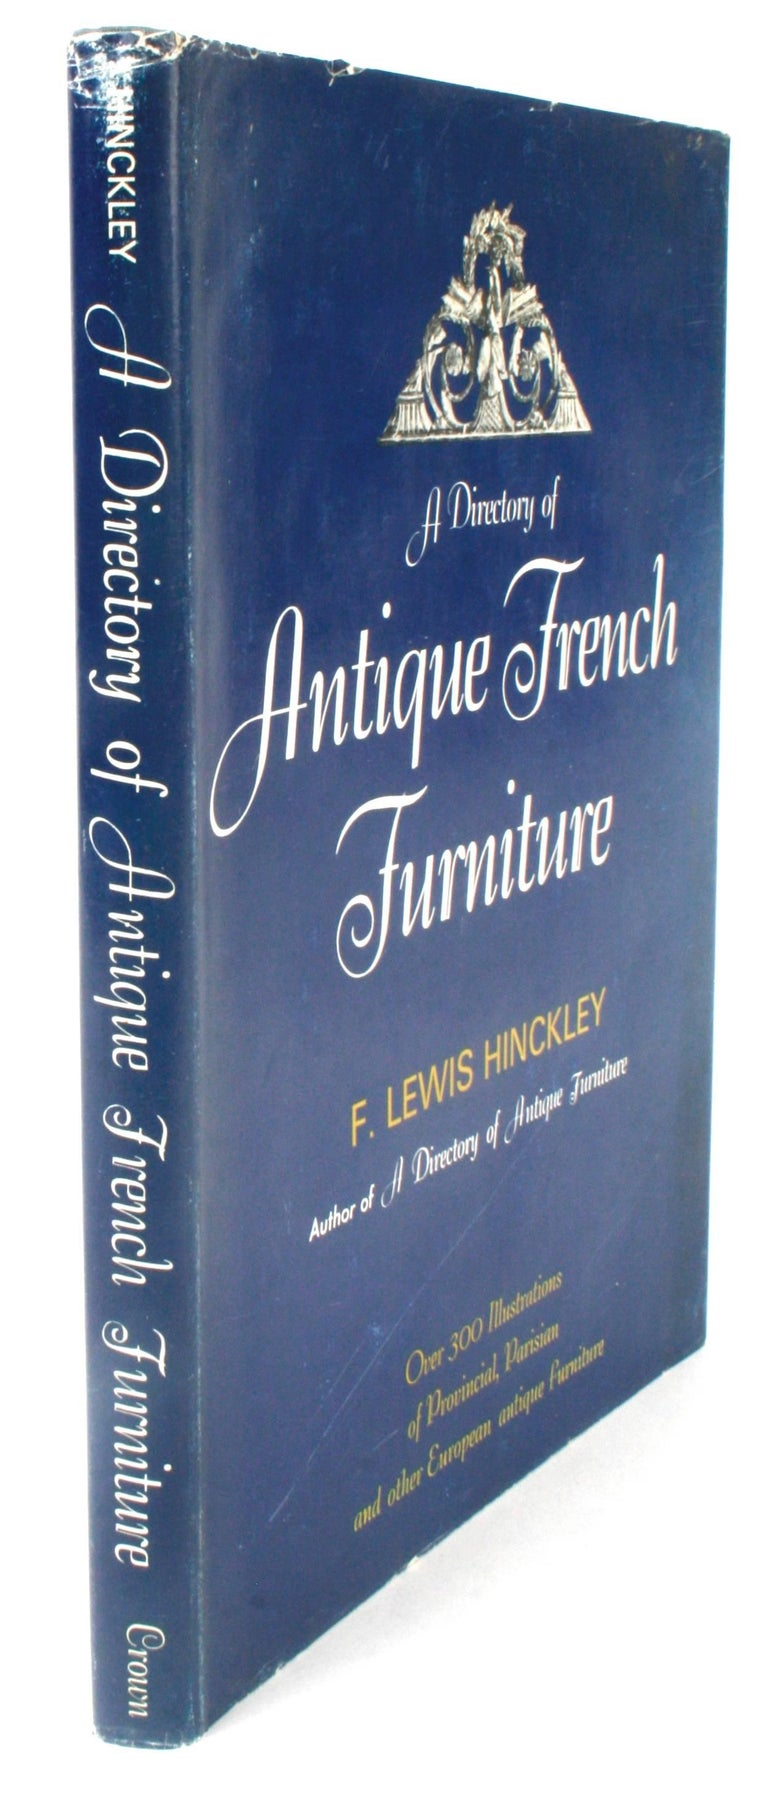 Antique French Furniture by F. Lewis Hinckley, First Edition For Sale 8